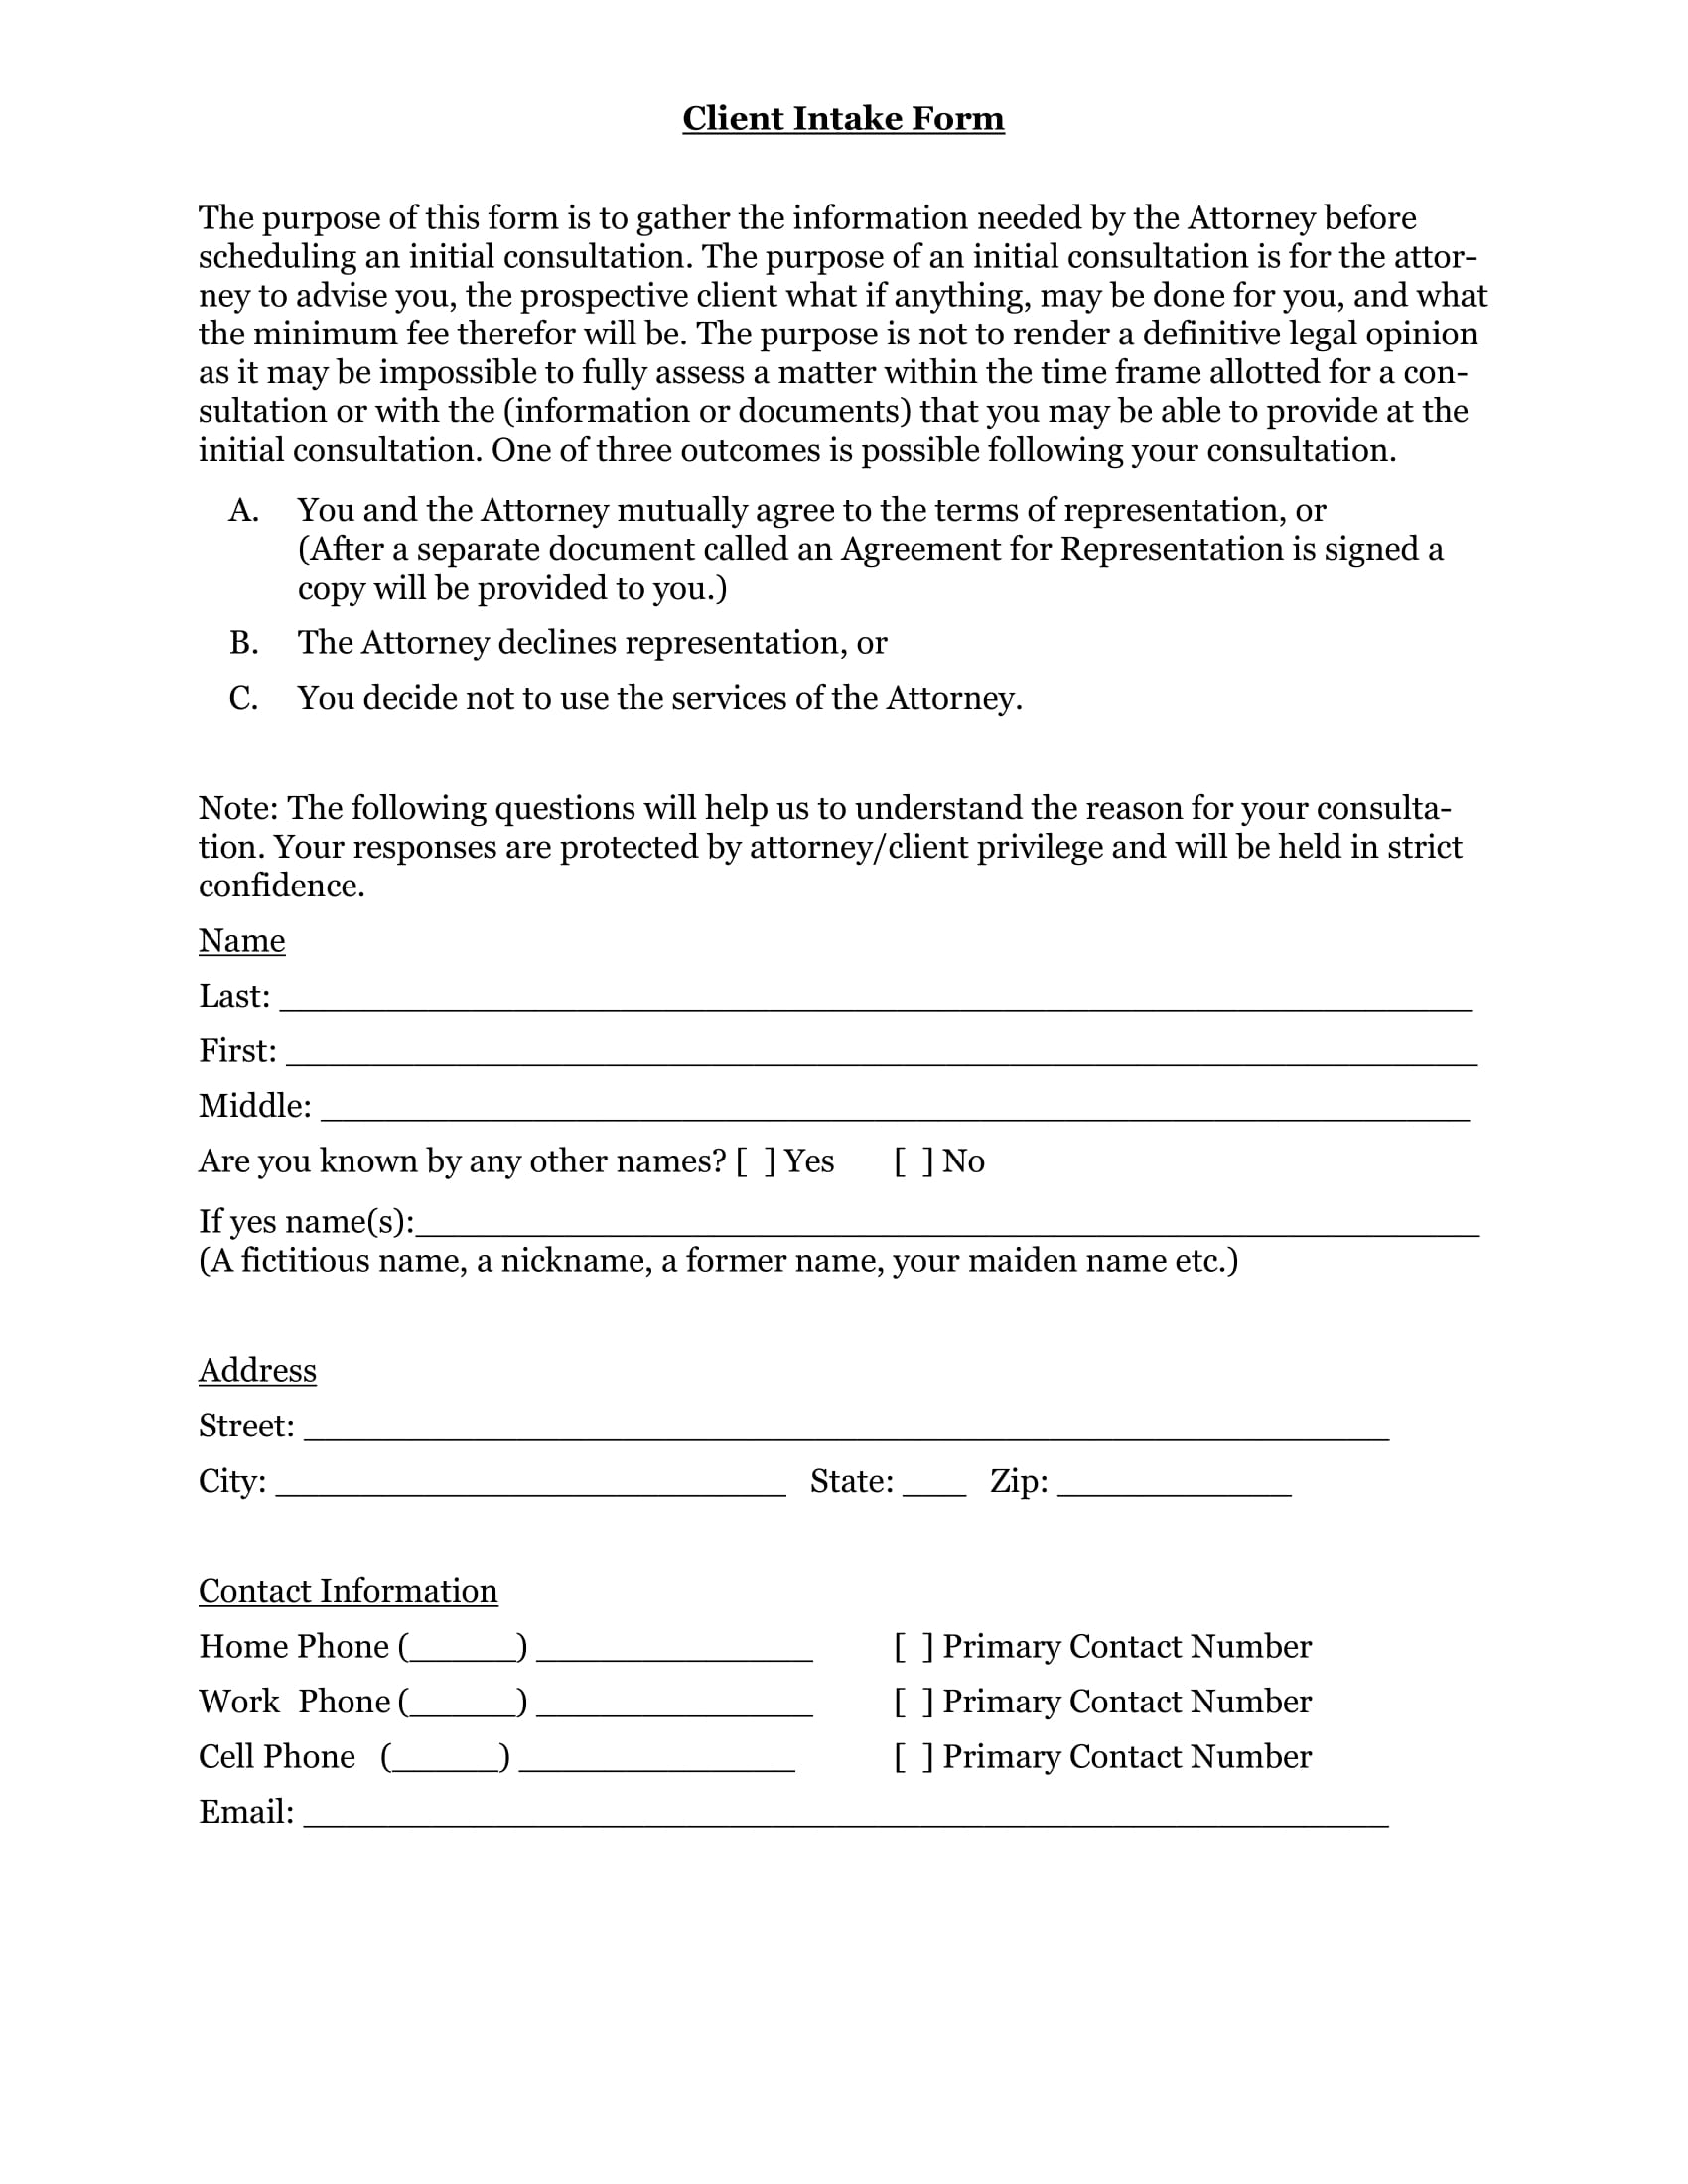 law office client intake form 1